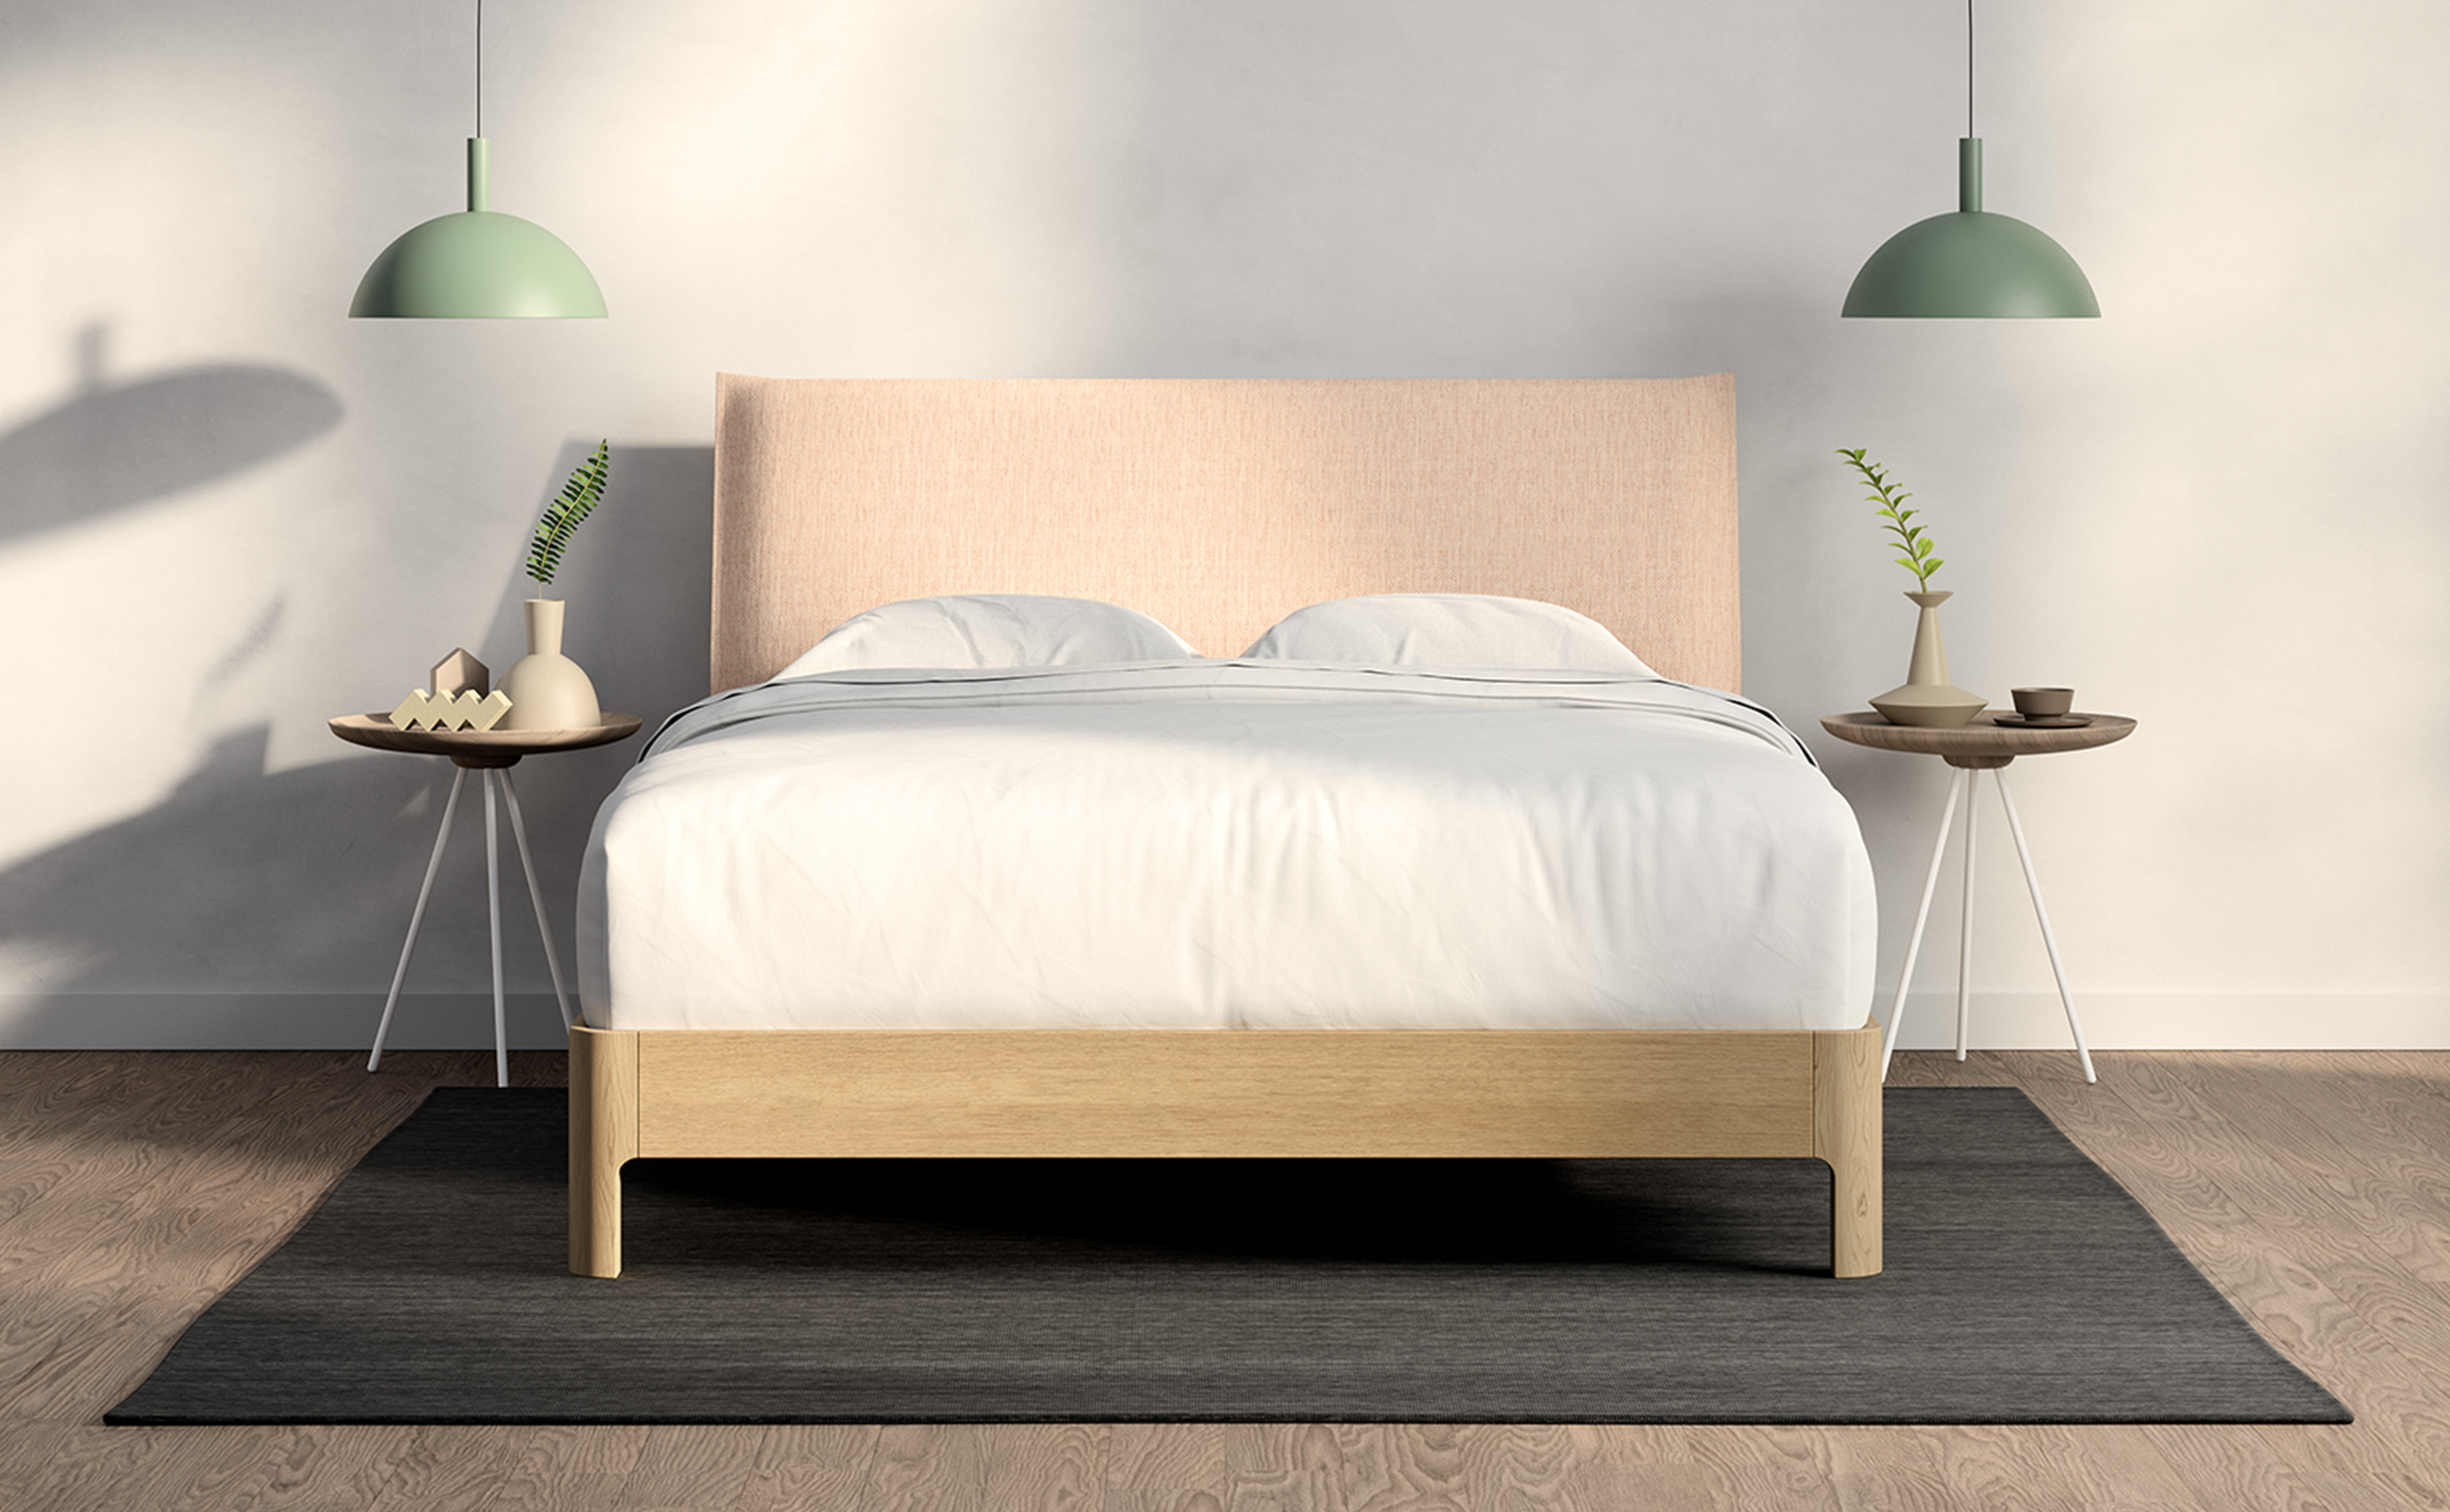 Casper Repose Wooden Bed Frame With Headbord Casper